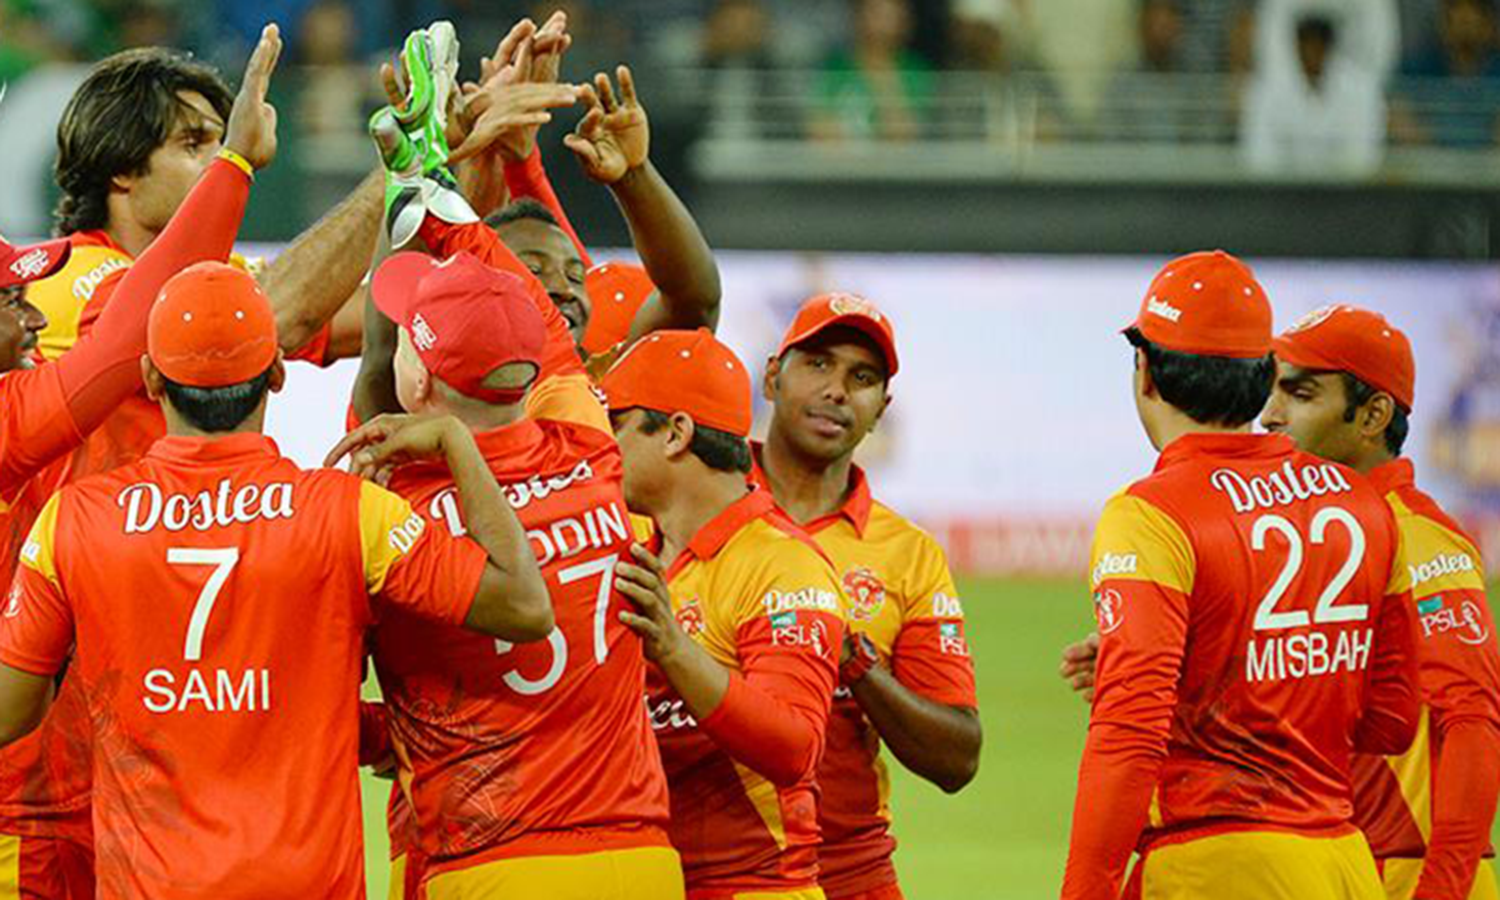 Islamabad's premier league team, Islamabad United. The total worth of the team is $15 million. (Pic: Pak Tribe)